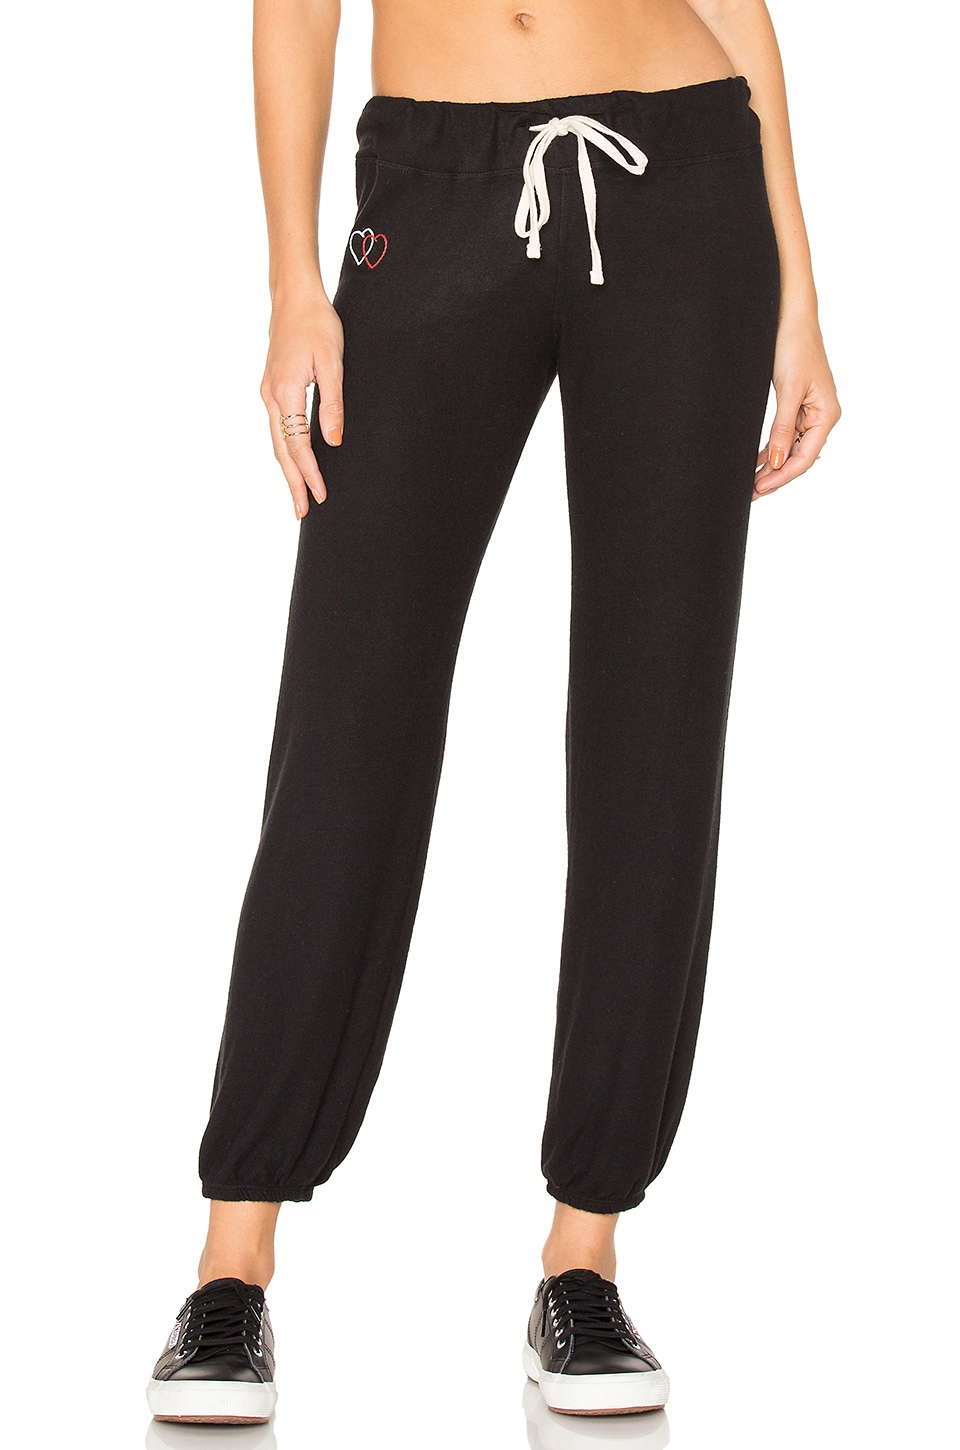 SUNDRY Heart Patch Sweatpants in Black